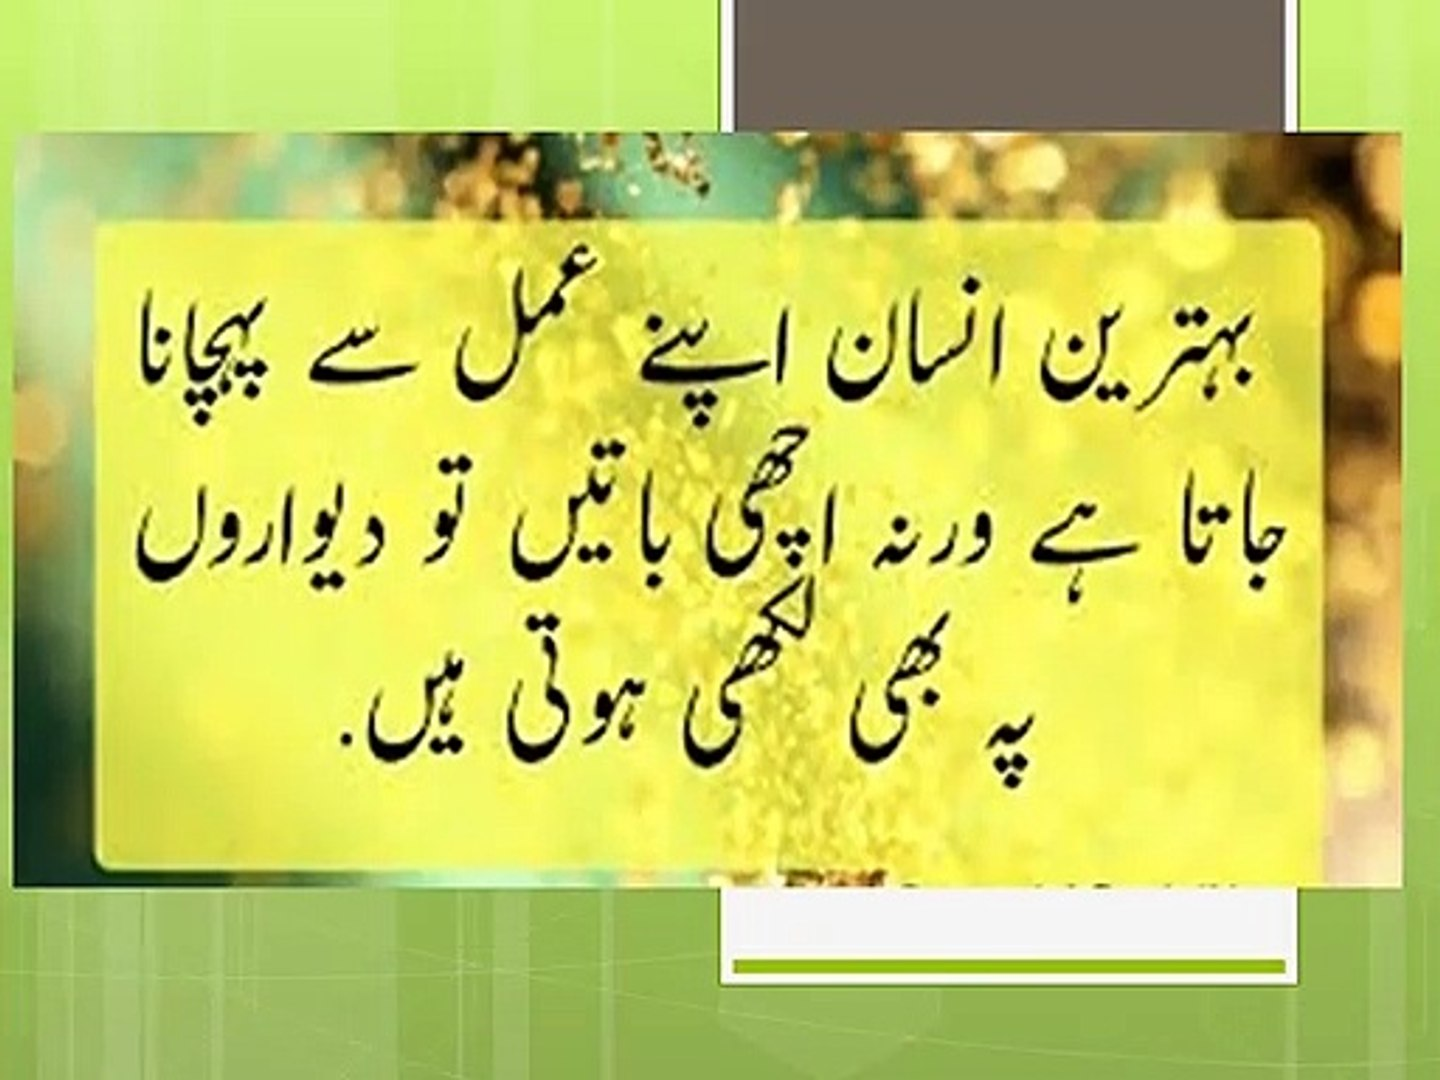 Best Urdu Quotes Best Whatsapp Urdu Quote Status Video Dailymotion Find interesting urdu status for your social wednesday, 7 august 2019 august 07, 2019 wednesday, 7 august 2019 today i'm going to share the fresh new list of urdu status for whatsapp. best urdu quotes best whatsapp urdu quote status